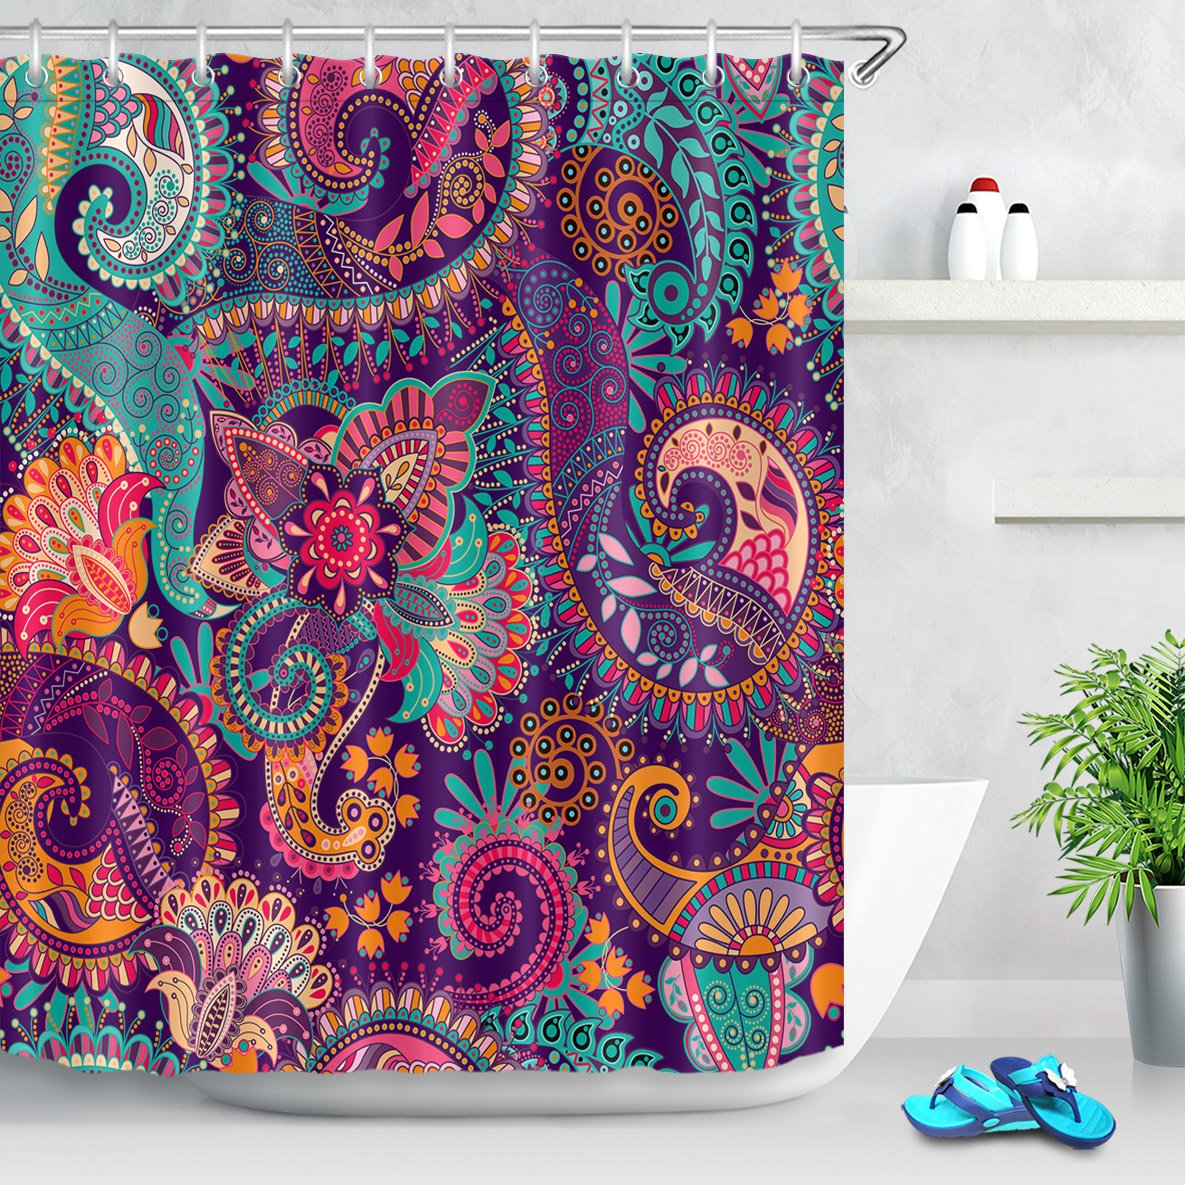 LB Indian Bohemian Shower Curtain Mandala Print Colorful Paisley Pattern Peace Sign Curtains Tribal Shower Curtains for Bathroom Waterproof Eco-Friendly Fabric 78x72 Inch with 12 Hooks,Purple